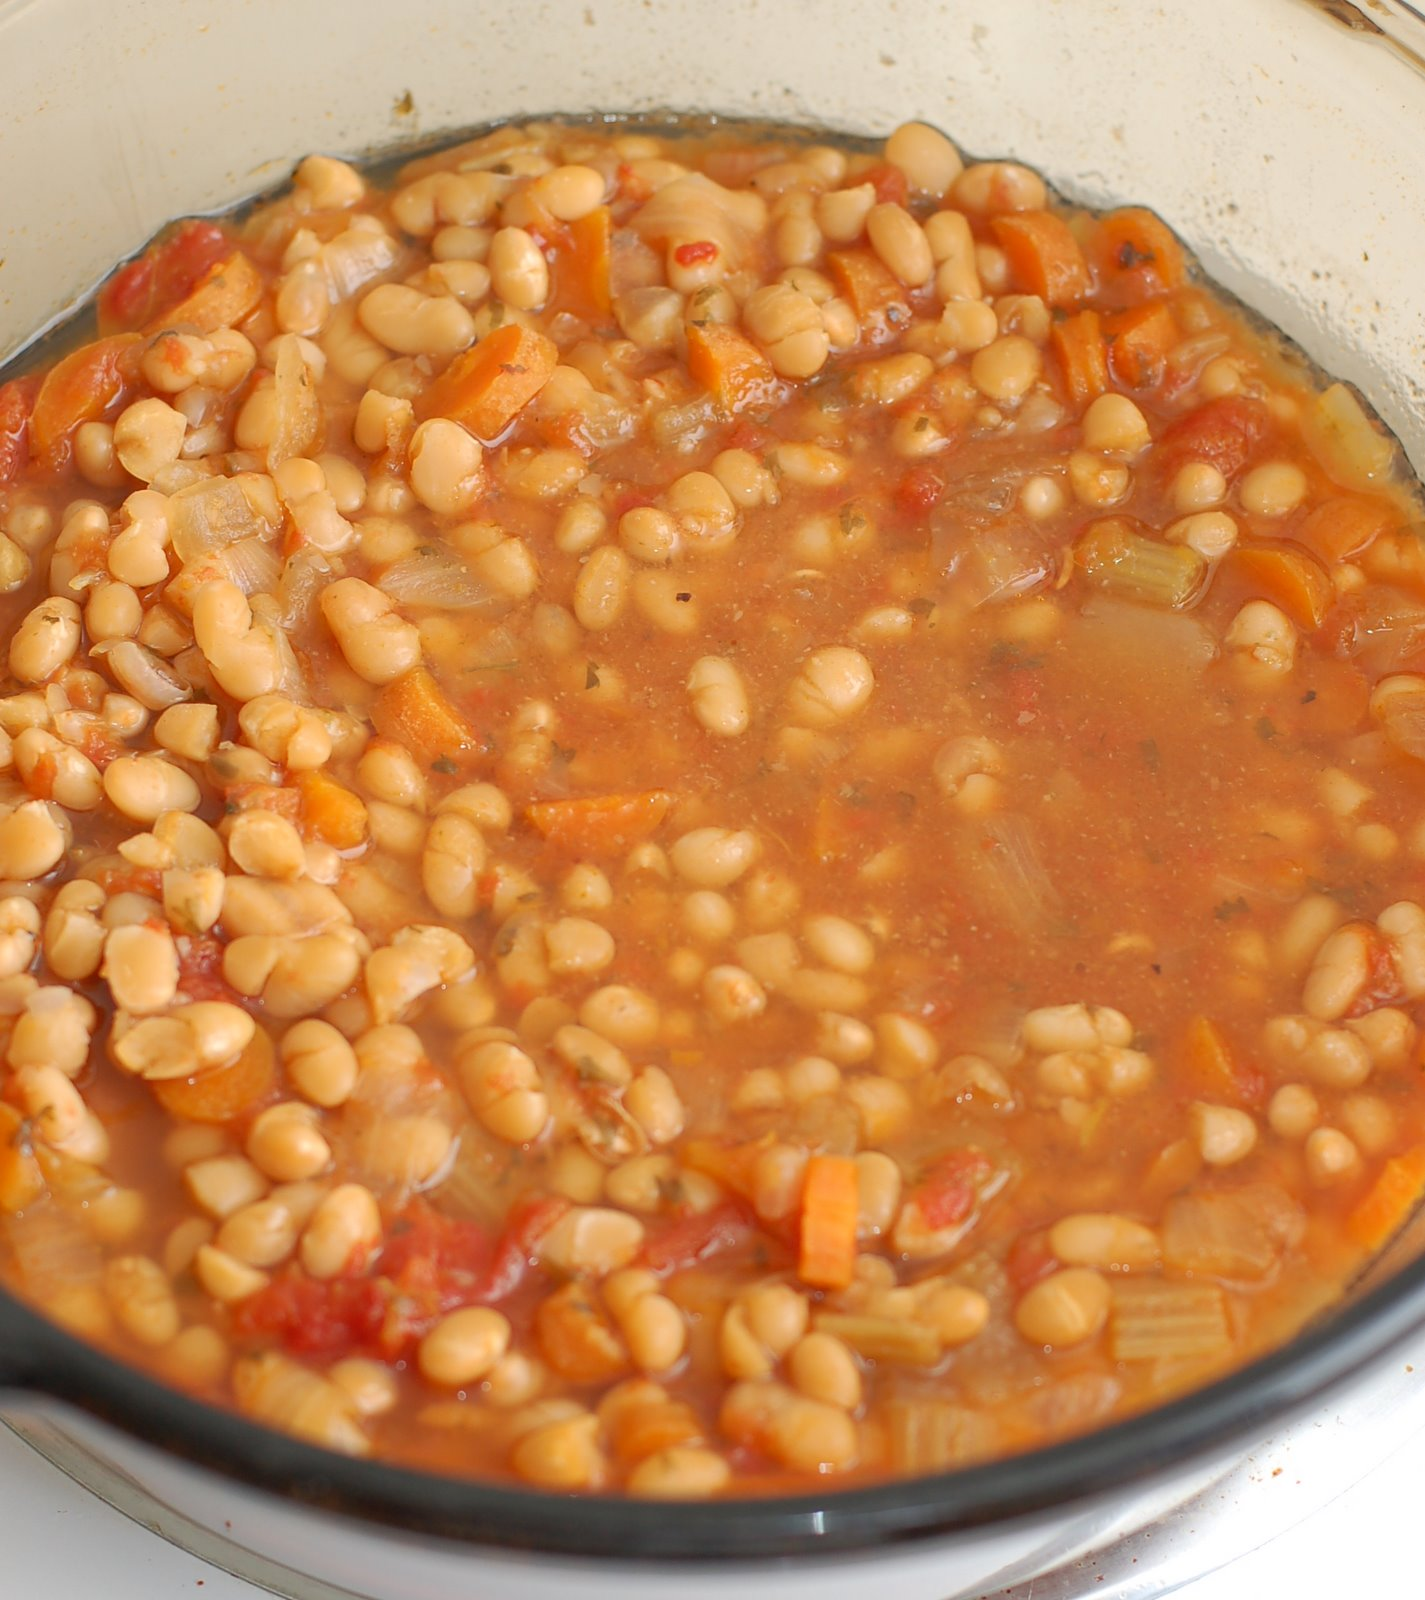 bean soup navy bean soup mrfood com senate navy bean soup hearty navy ...